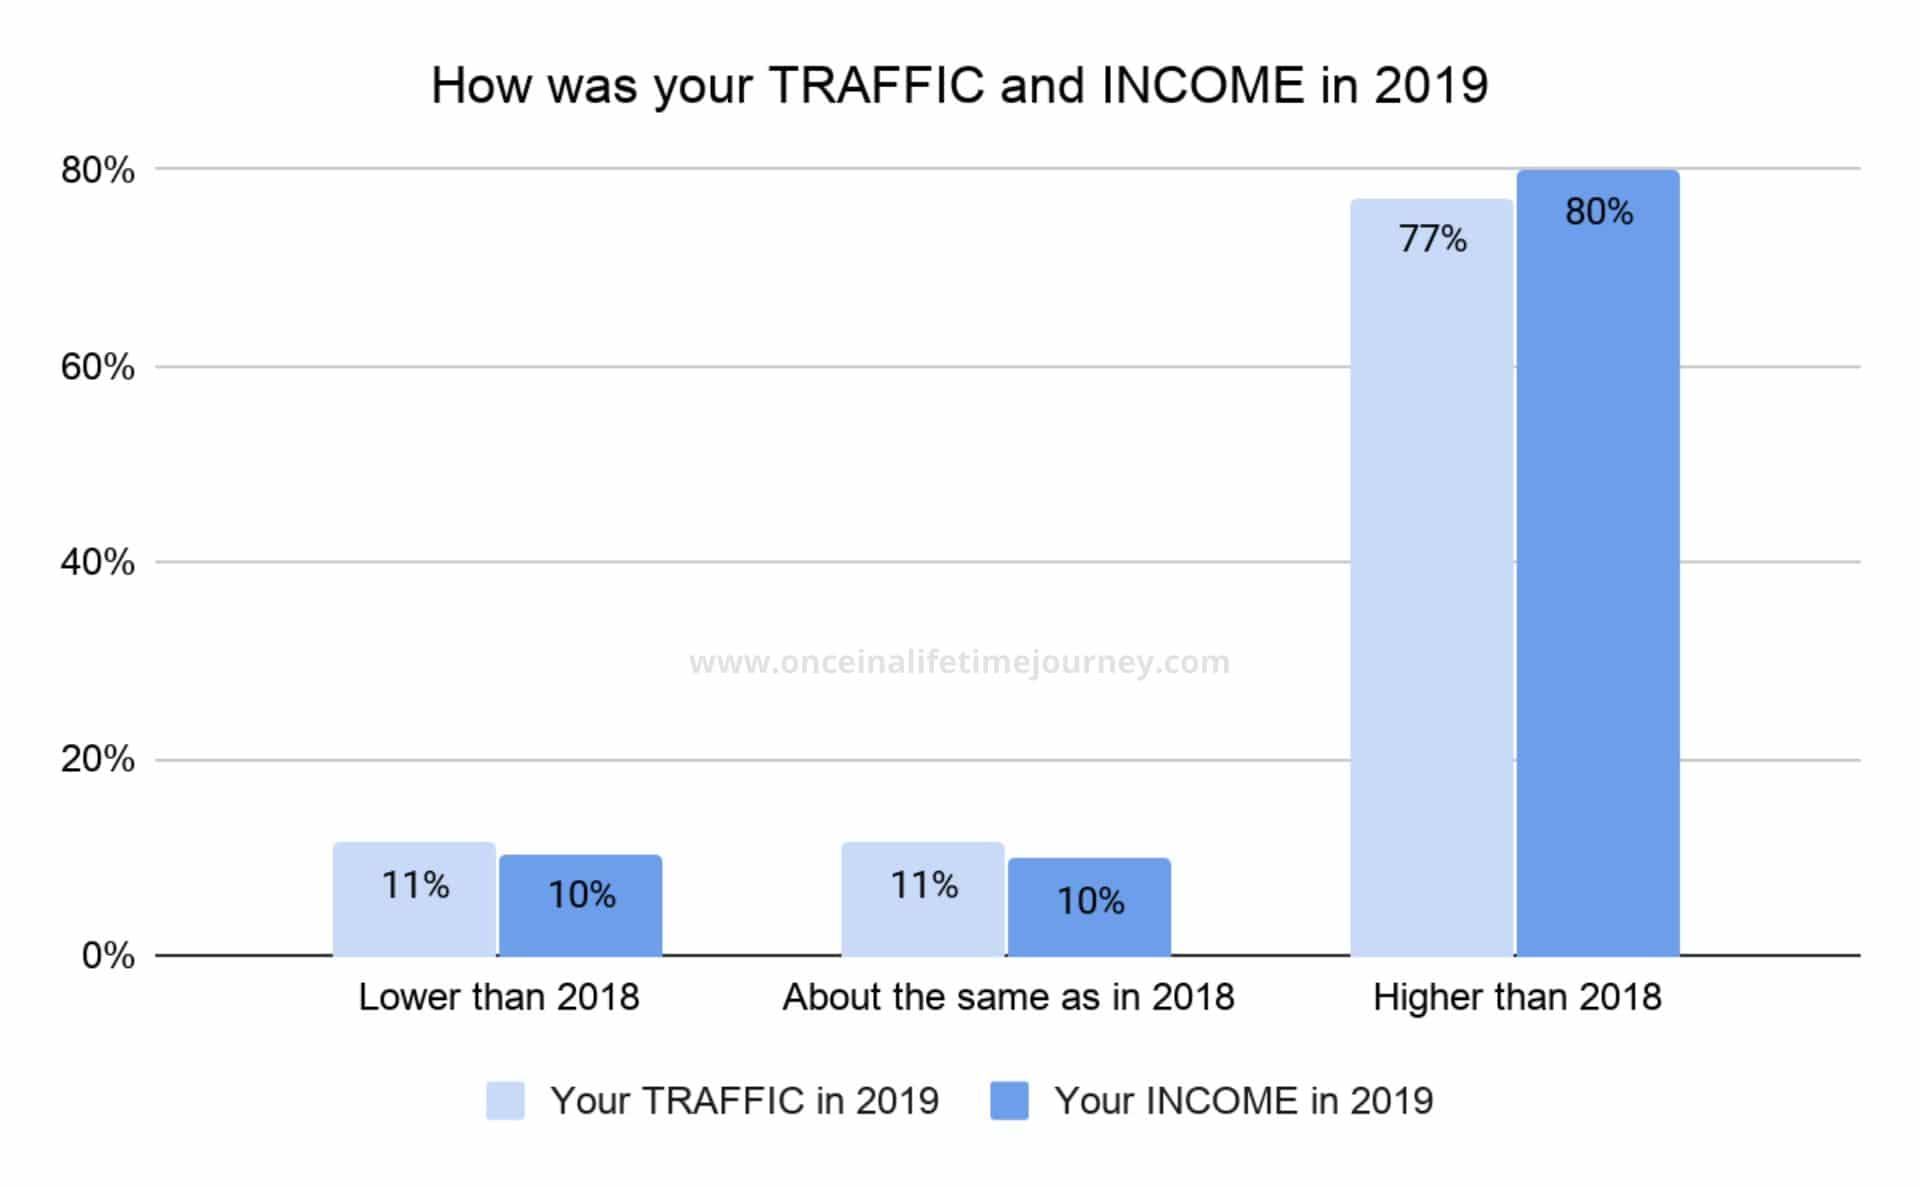 Level of traffic and income in 2091